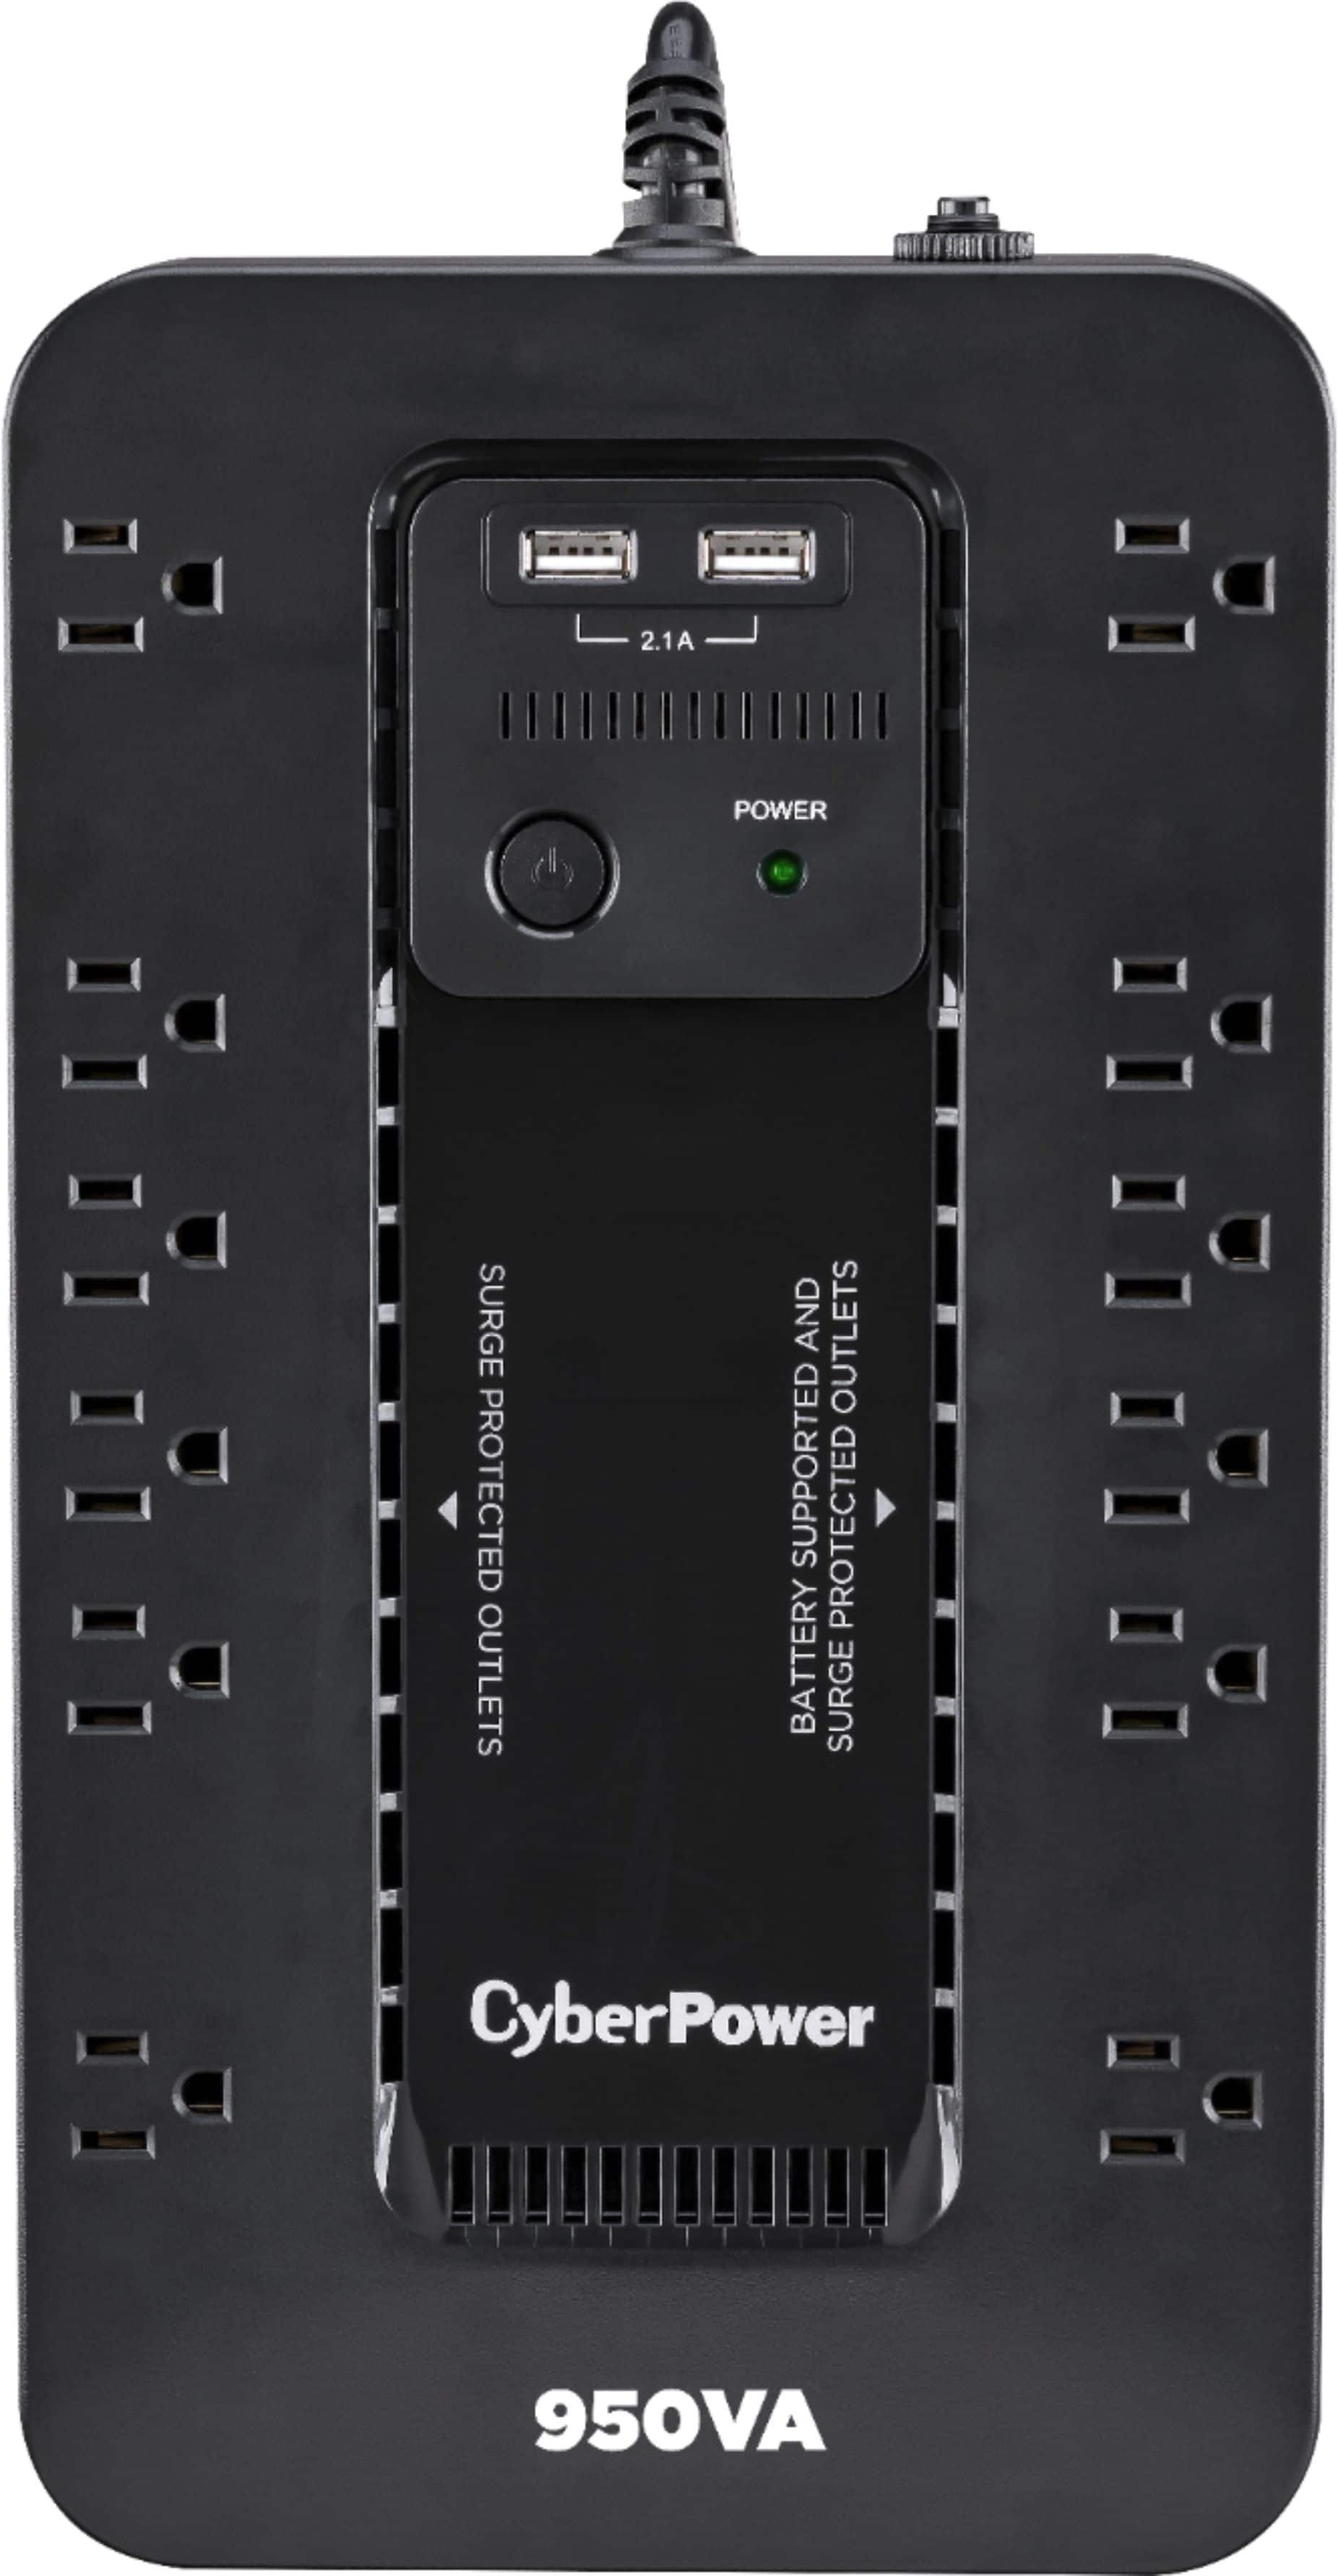 CyberPower 12-Outlet 950VA UPS Battery Backup System $70 + Free Shipping